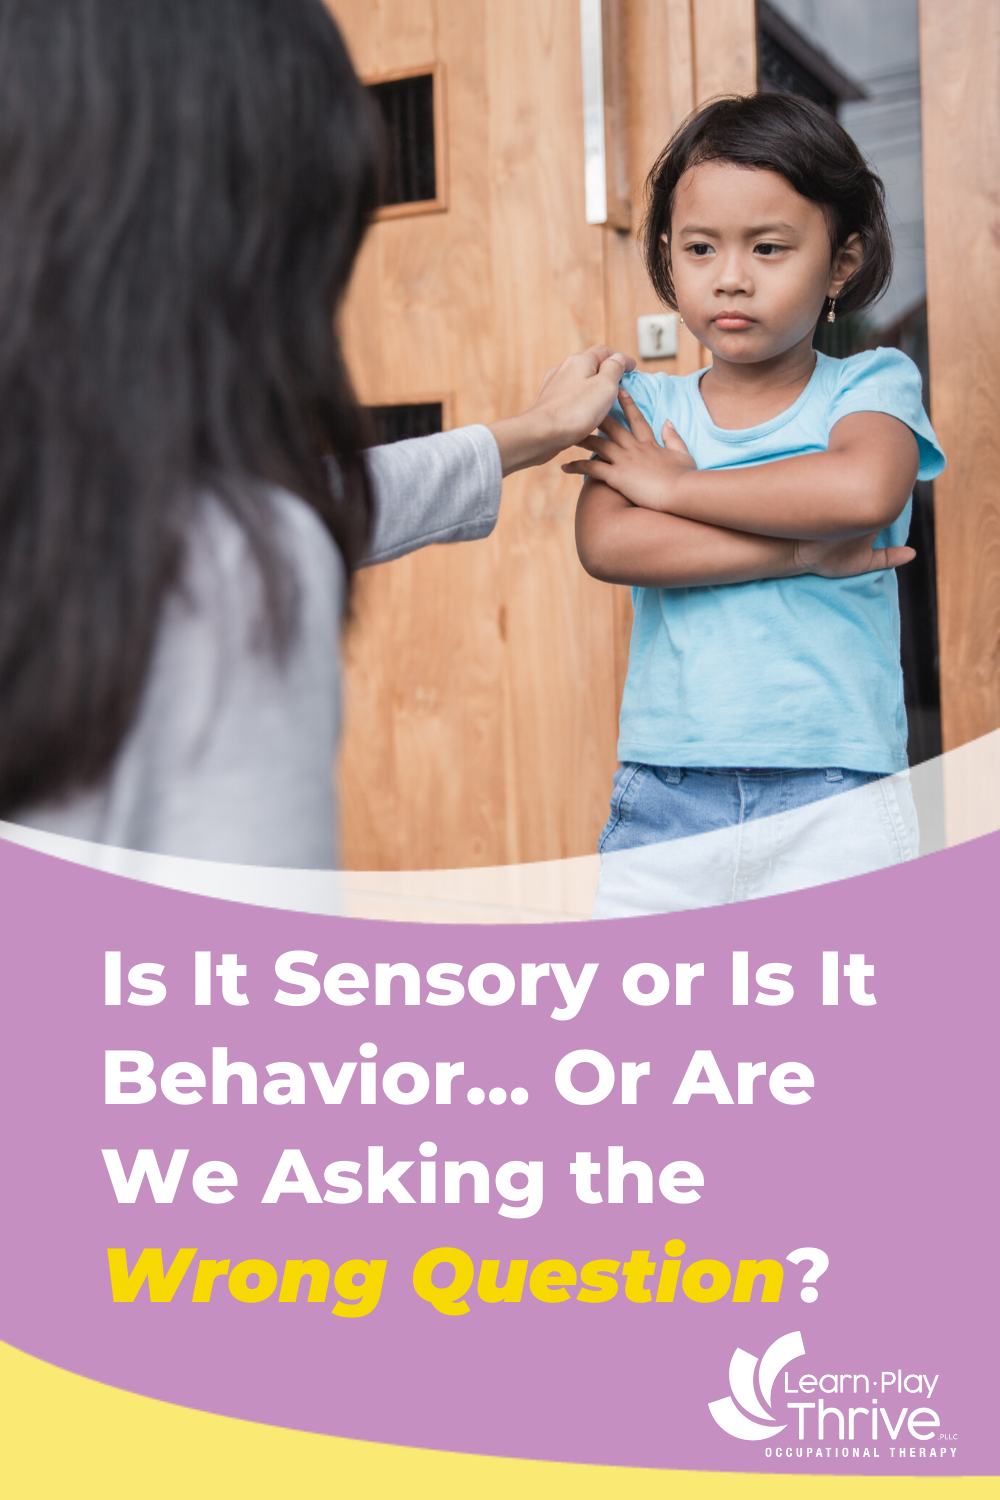 s It Sensory or Is It Behavior…or Are We Asking the Wrong Question